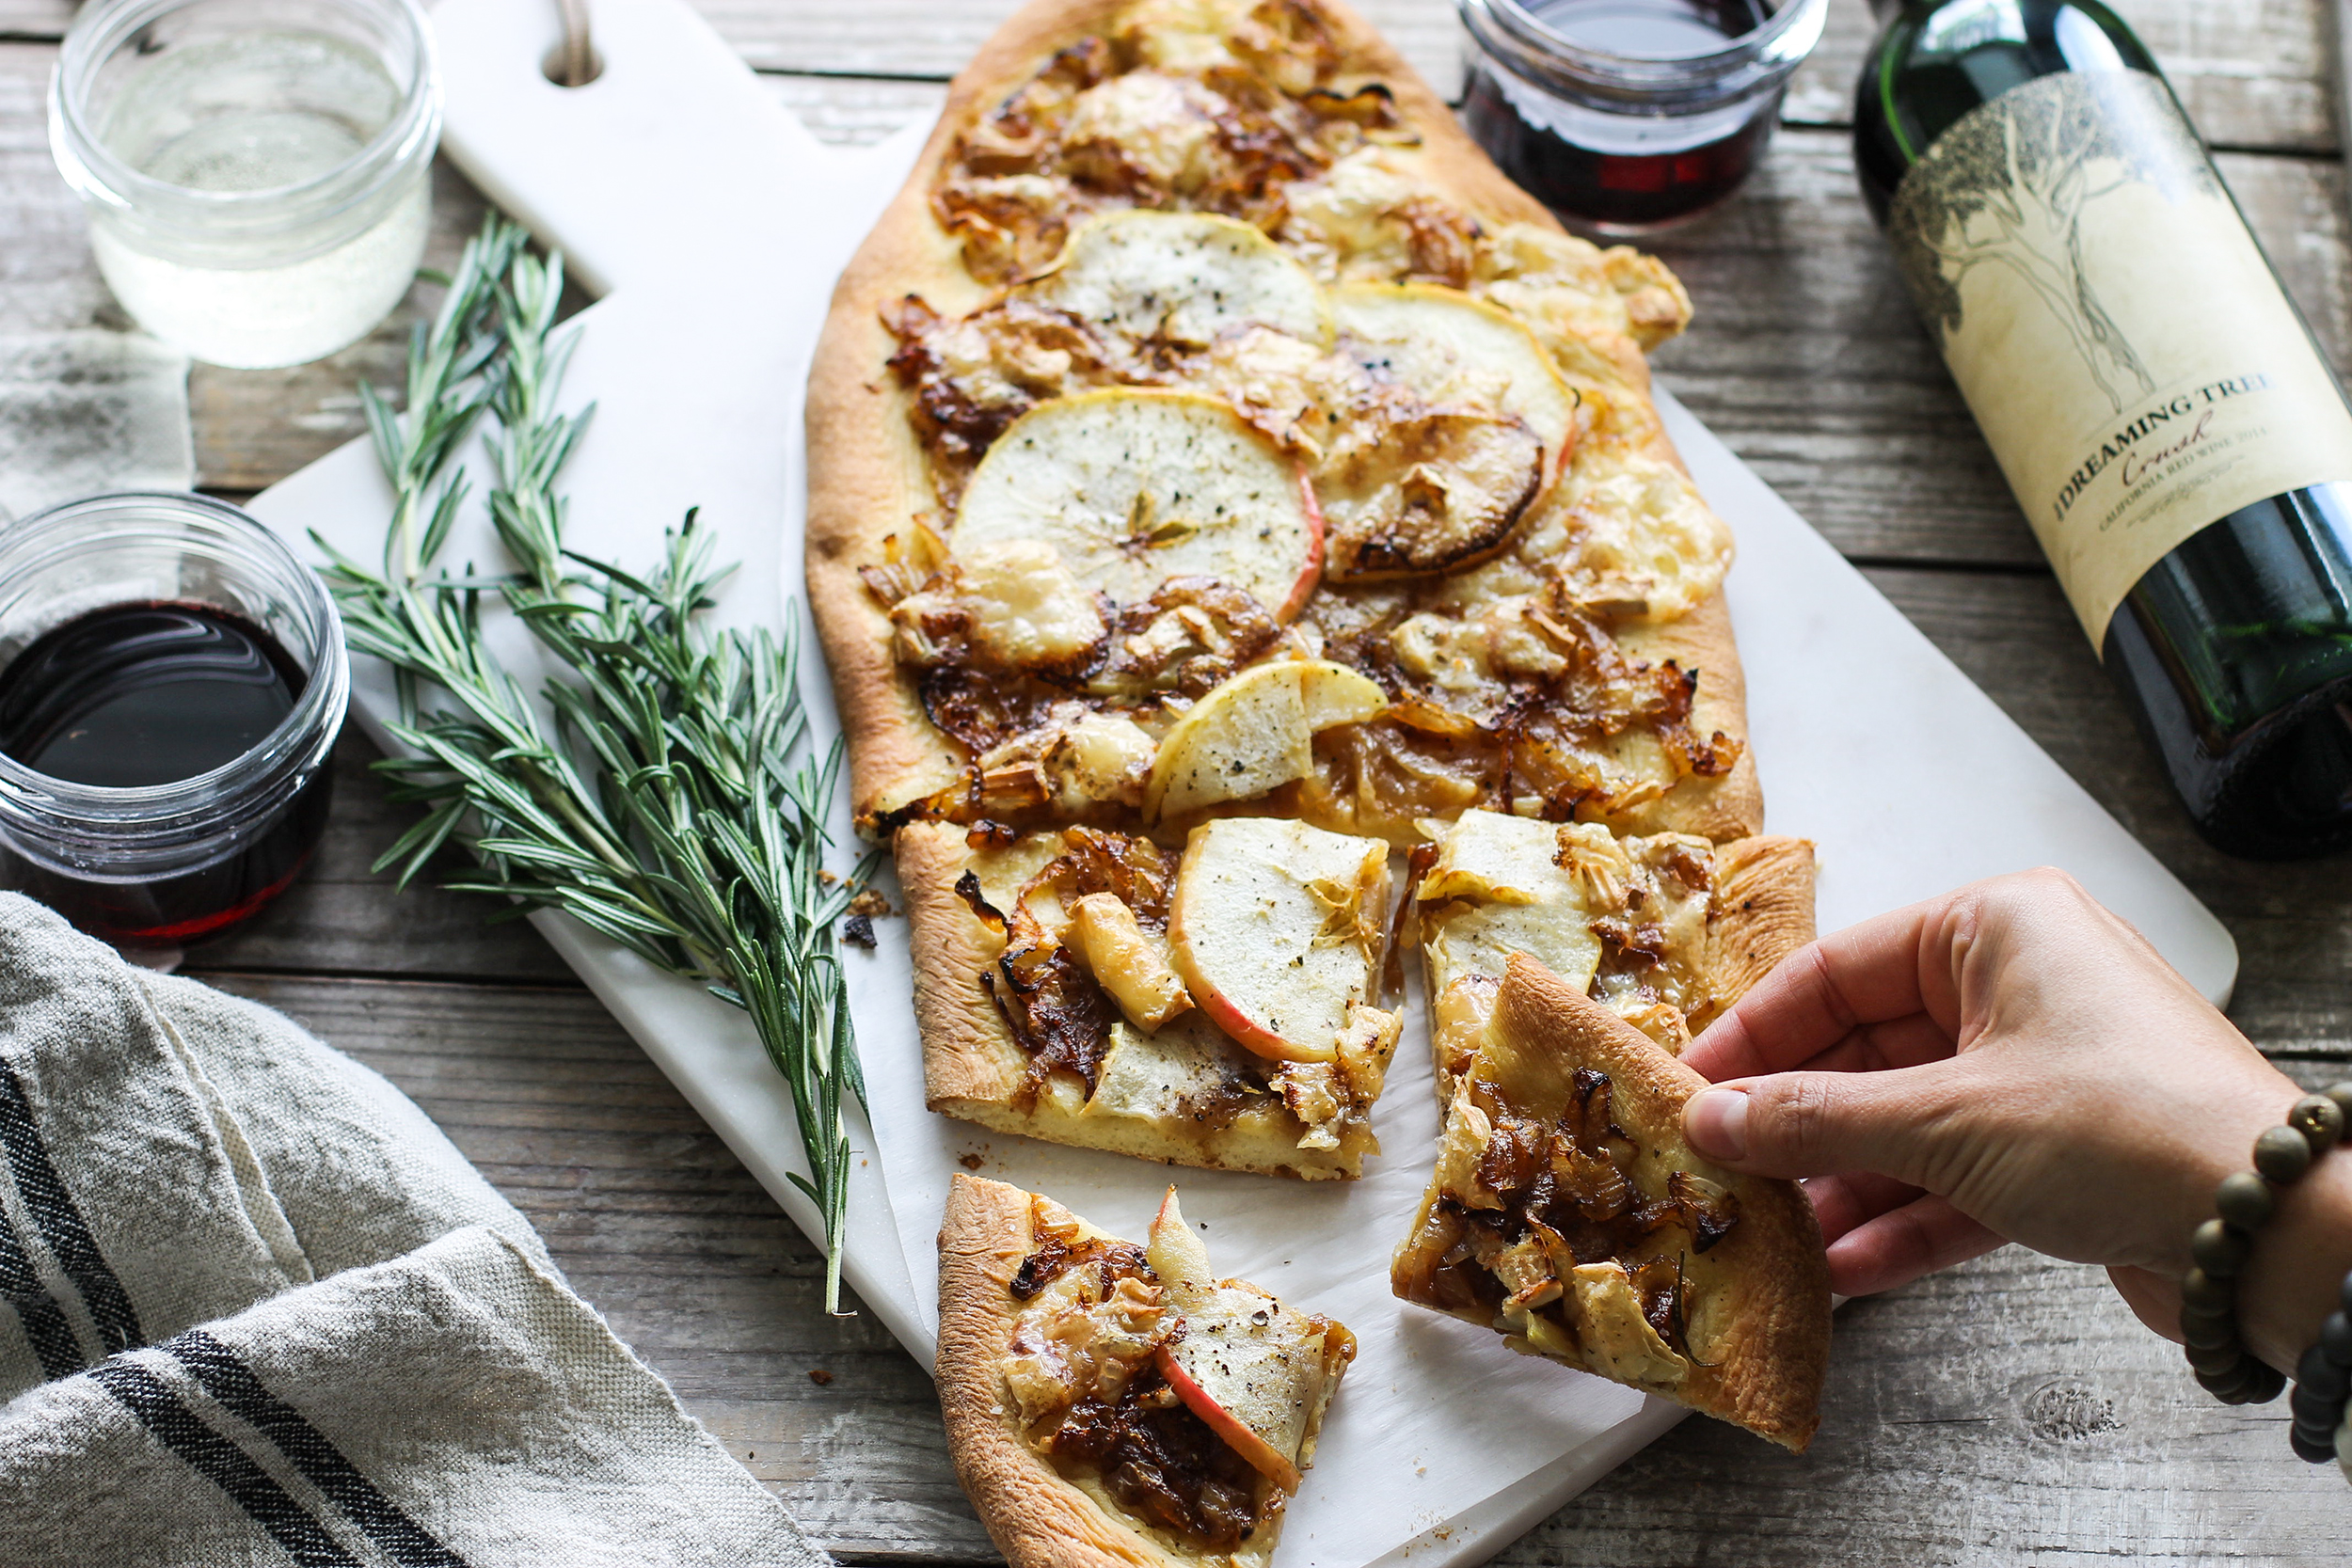 Caramelized Onion, Honeycrisp, and Brie Flatbread: My Diary of Us